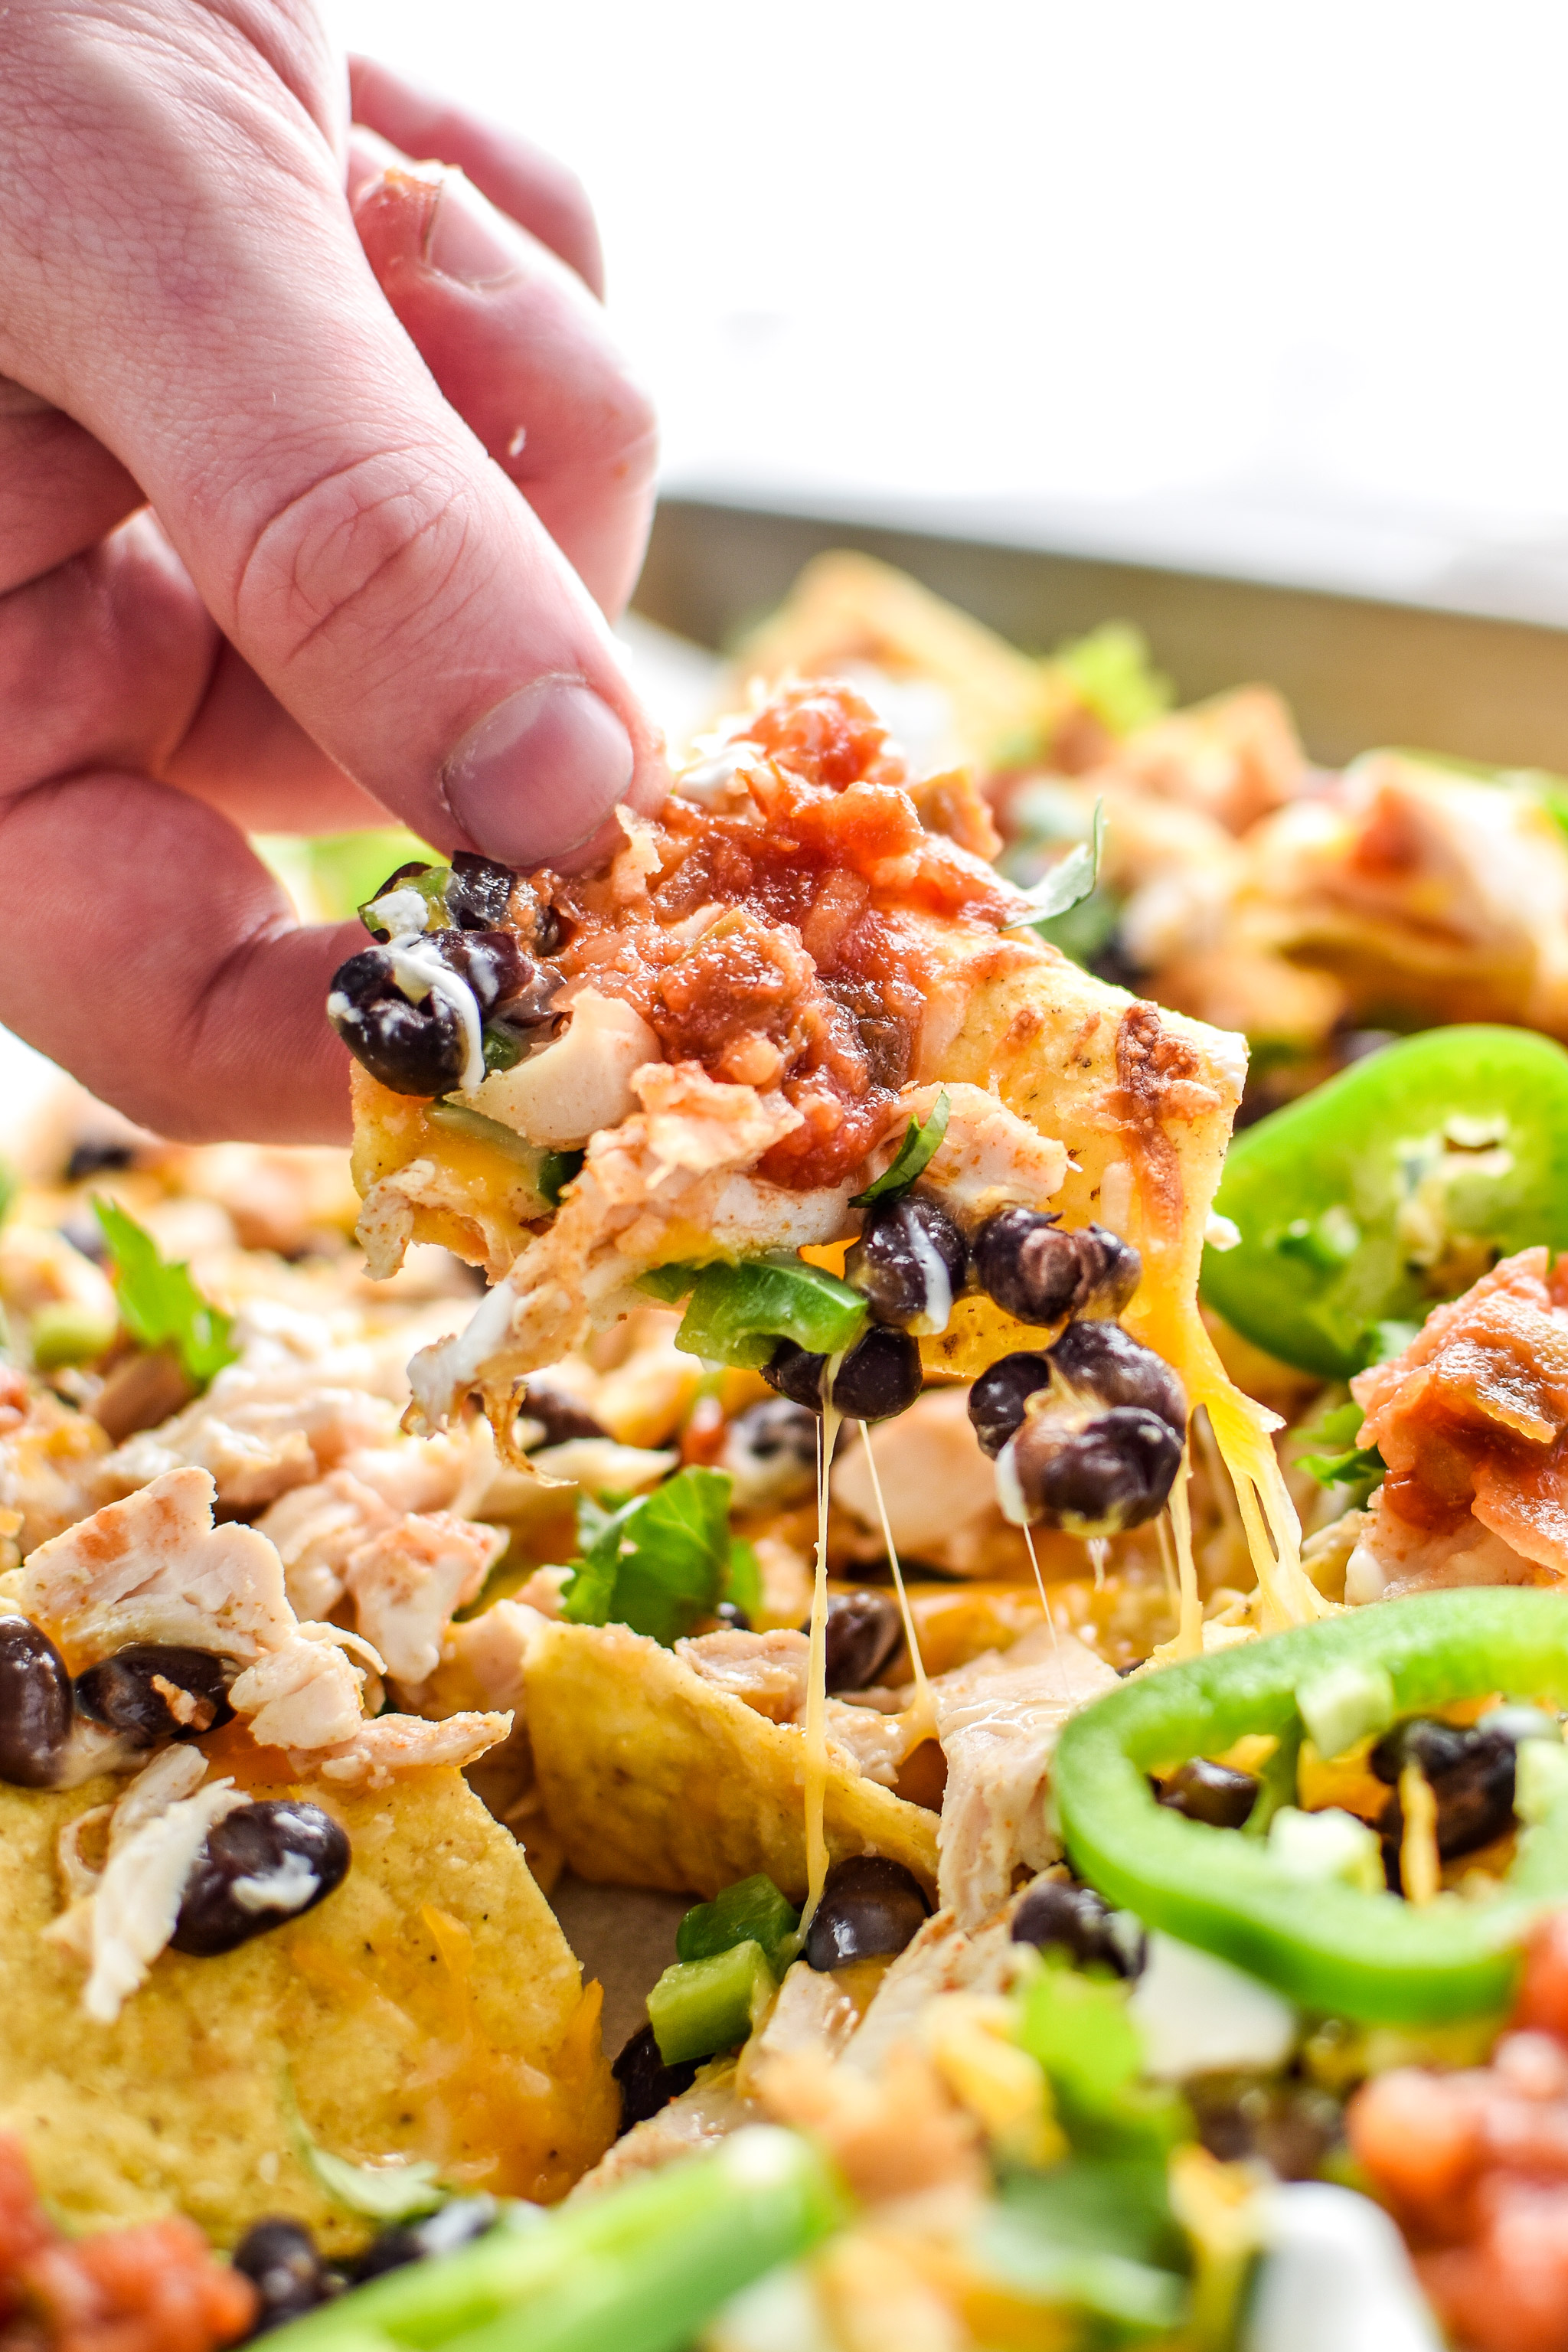 Taking a chip from the prep ahead rotisserie chicken nachos sheet pan. Yummy!